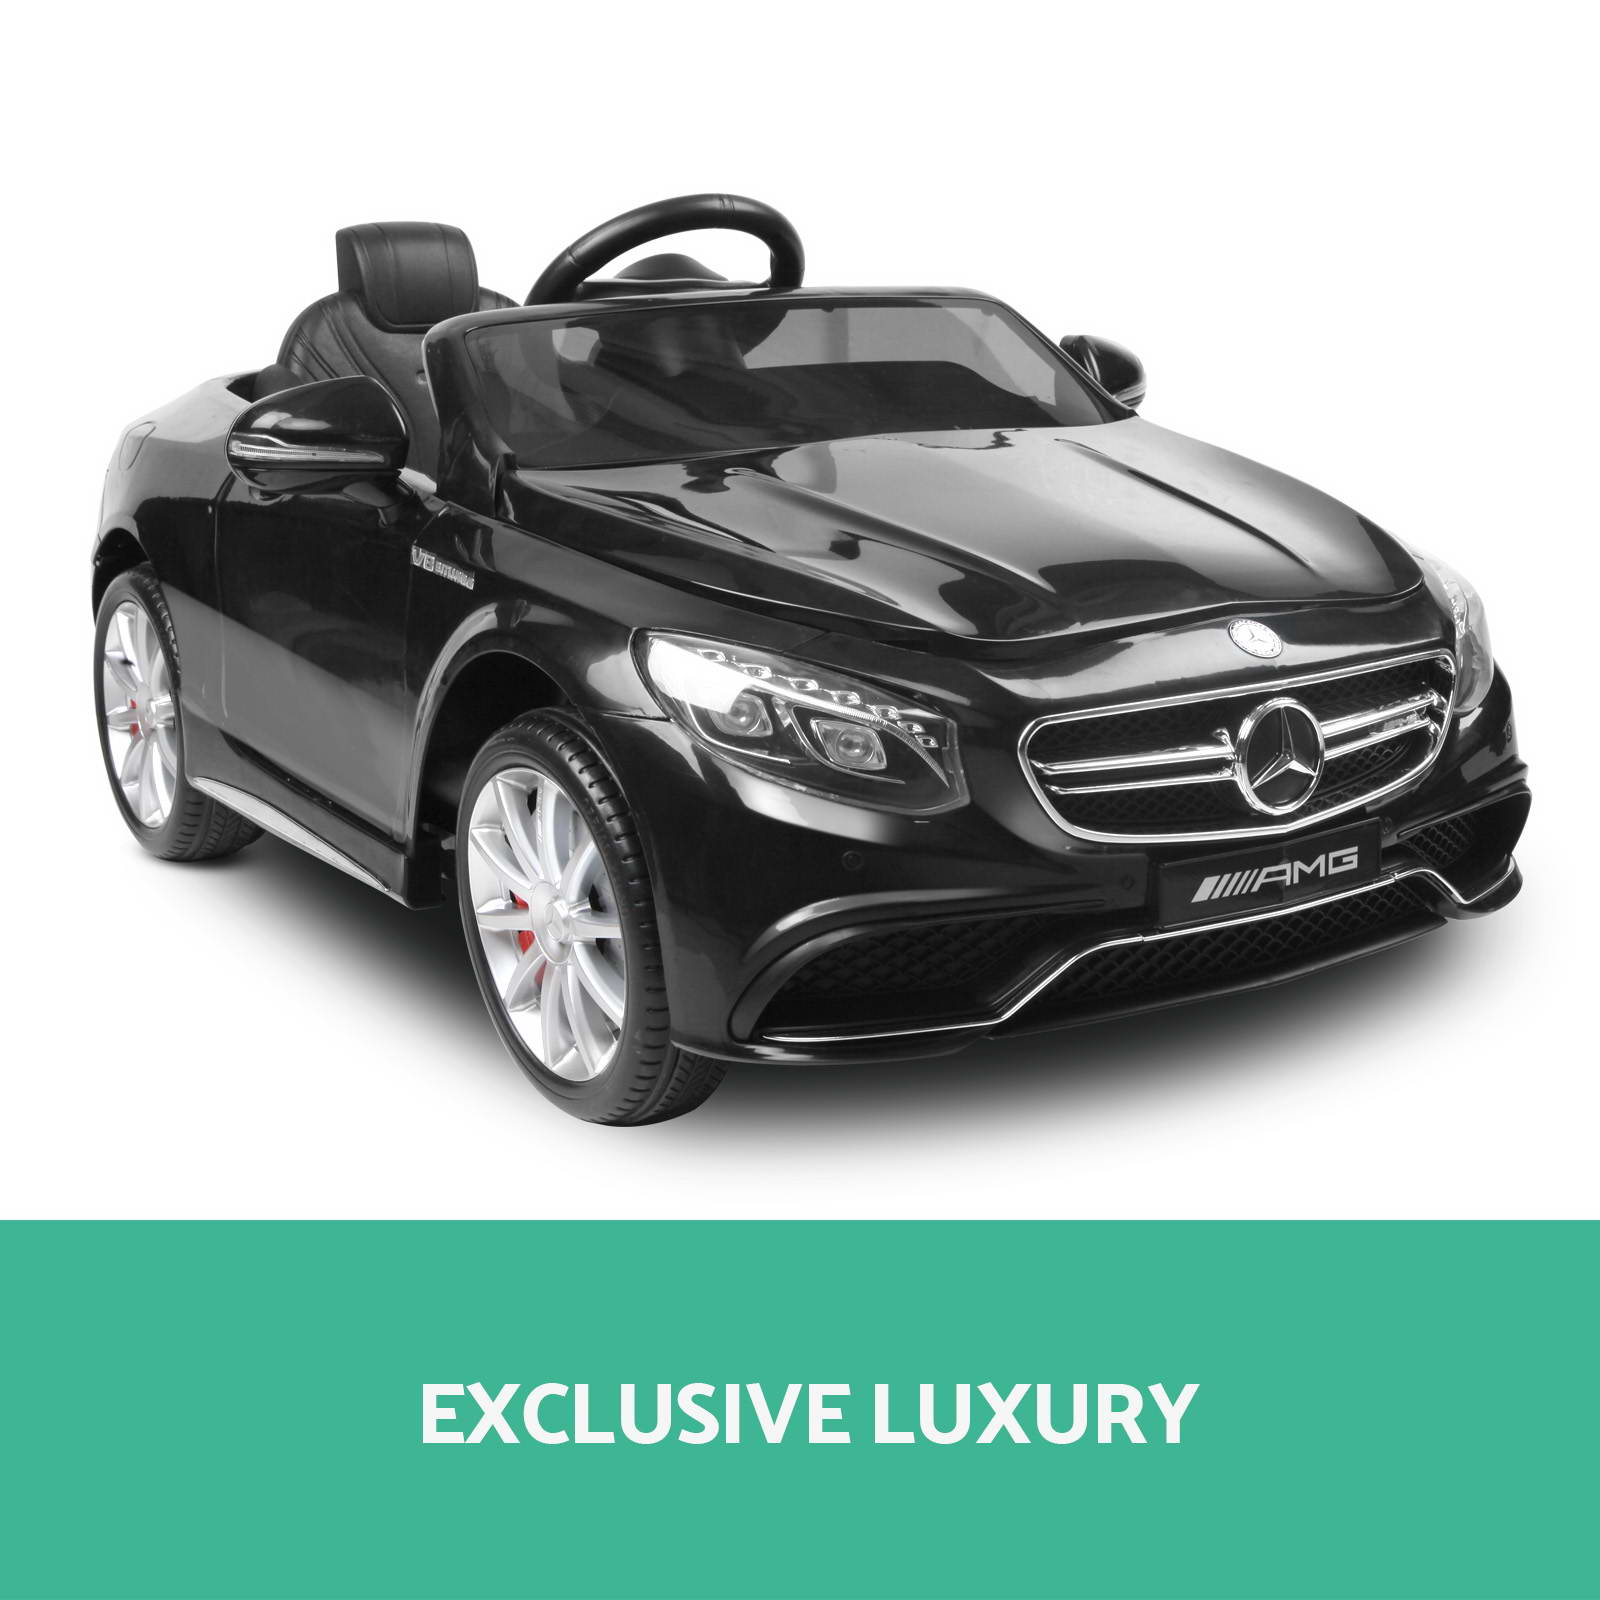 Kids electric ride on car licensed mercedes benz amg s63 for Mercedes benz toy car ride on